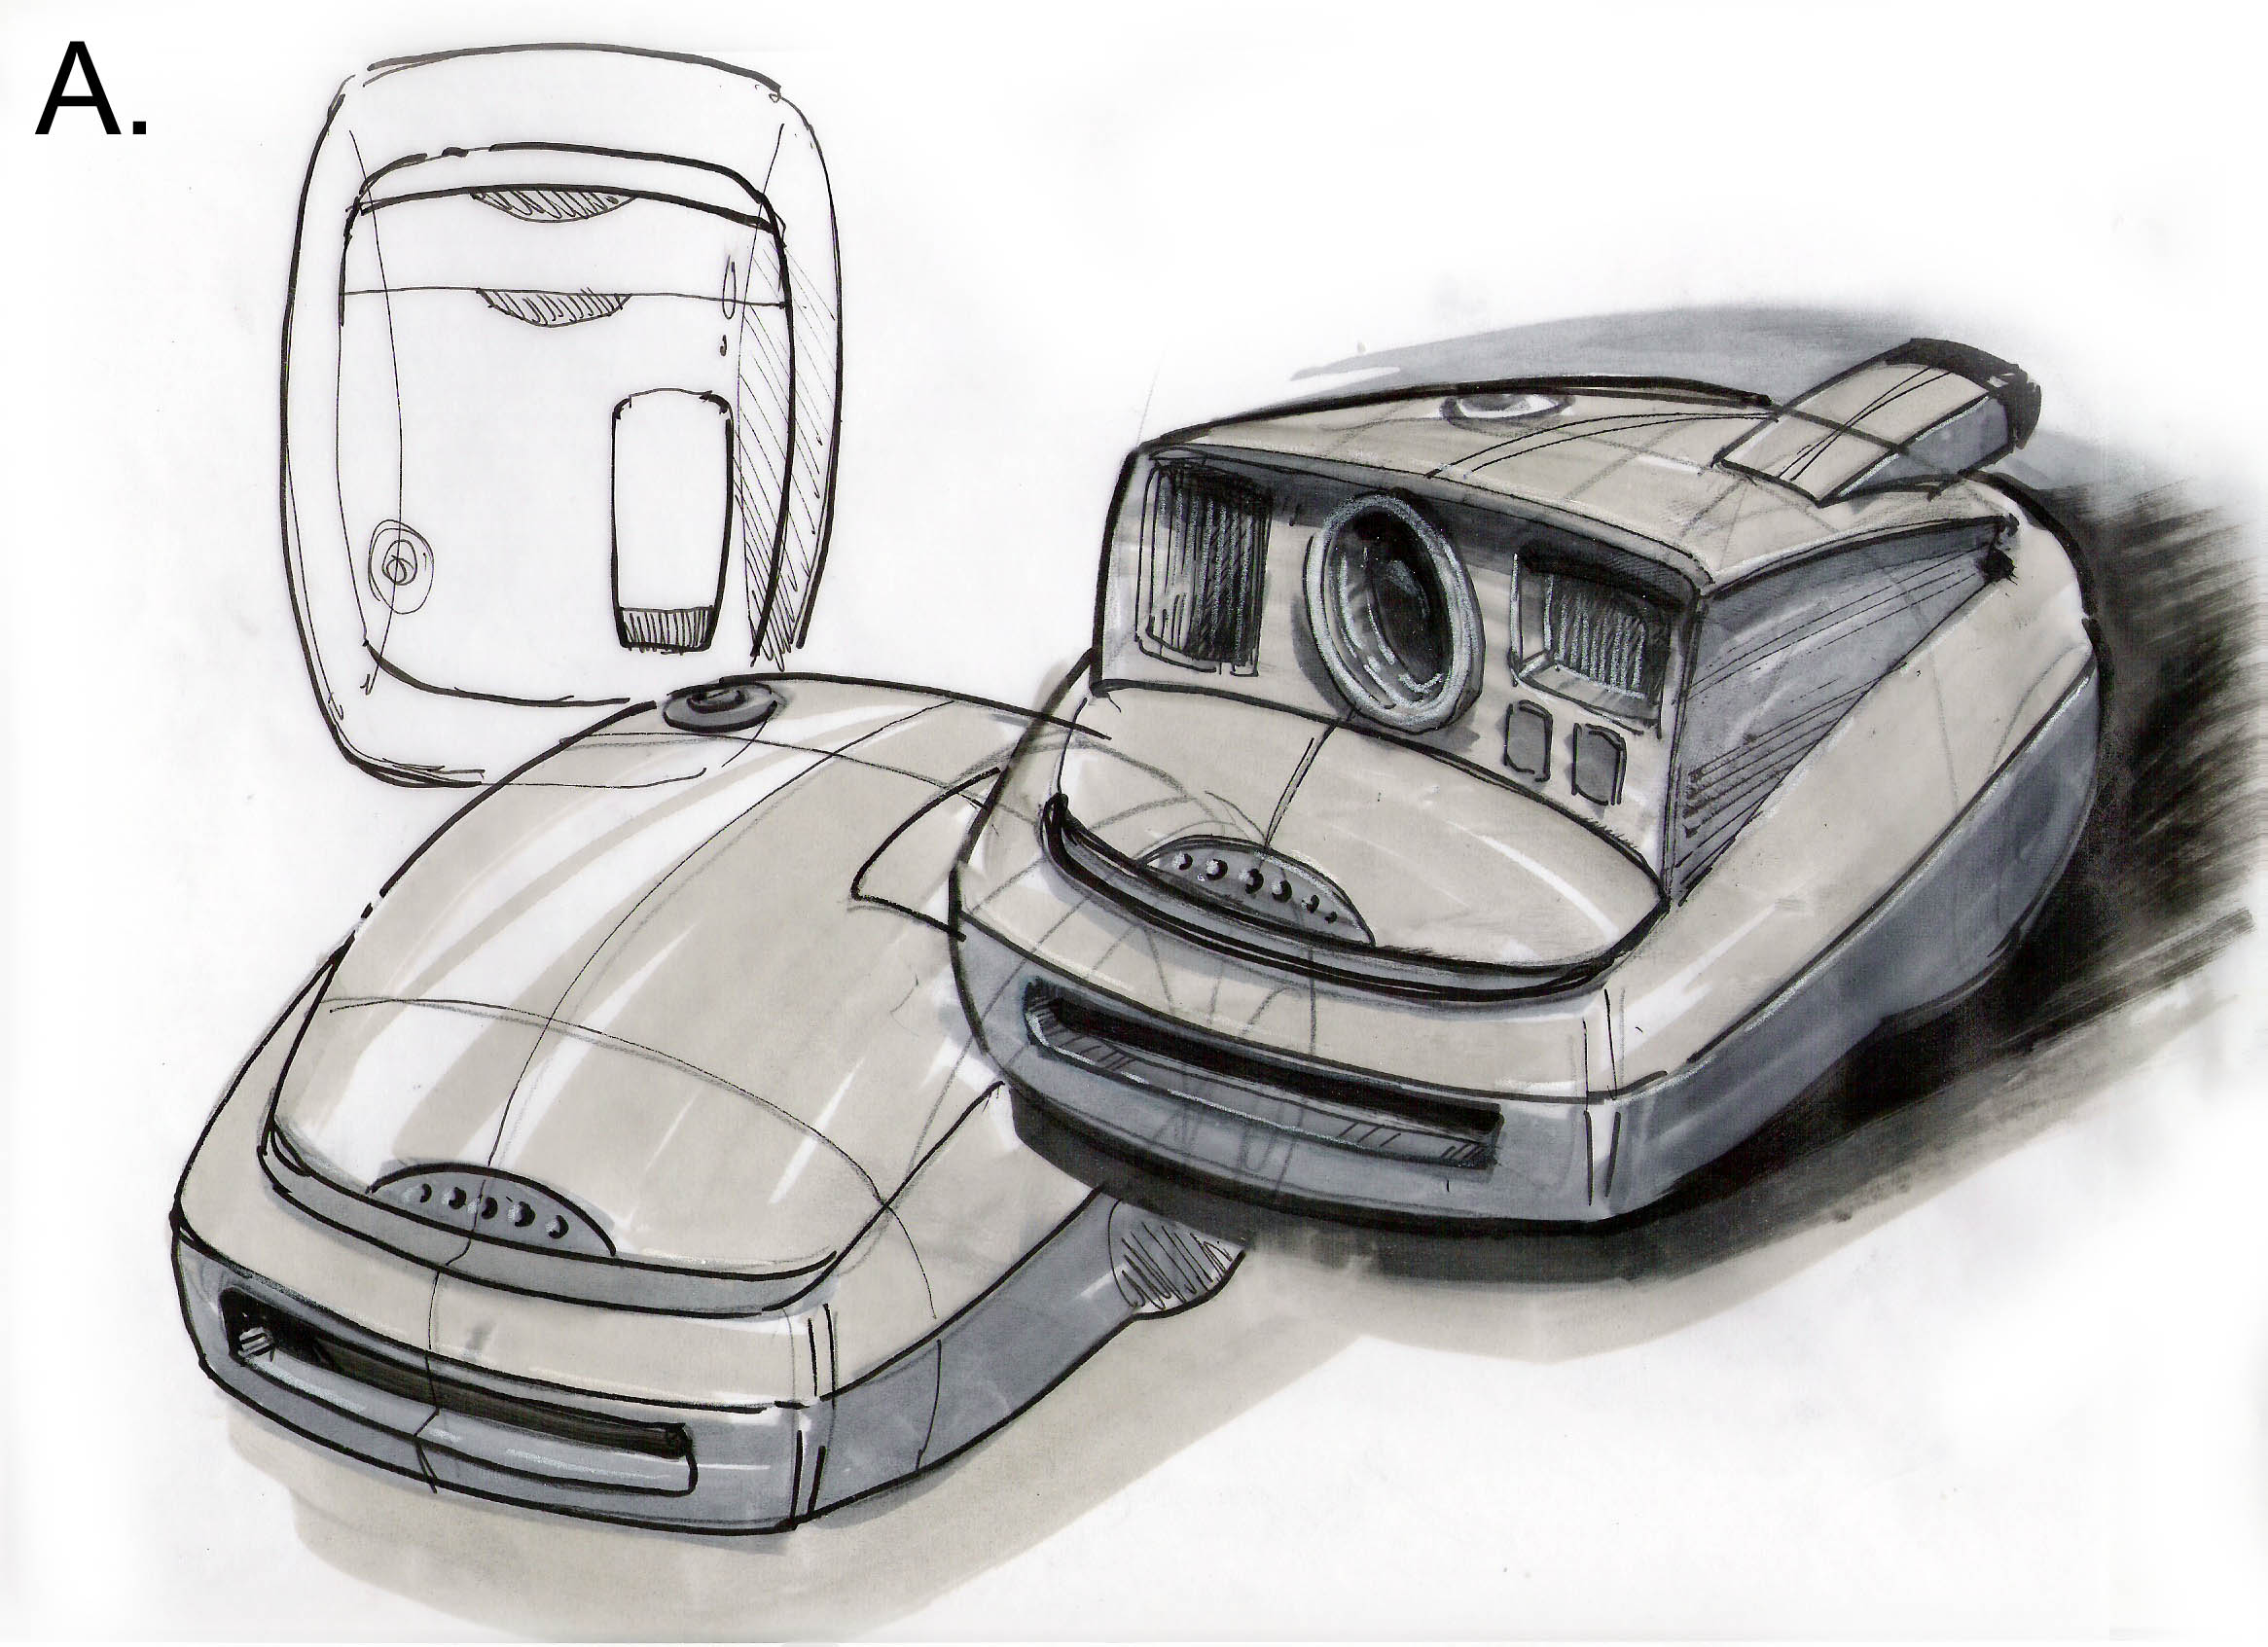 Polaroid instant camera, sketch -A.